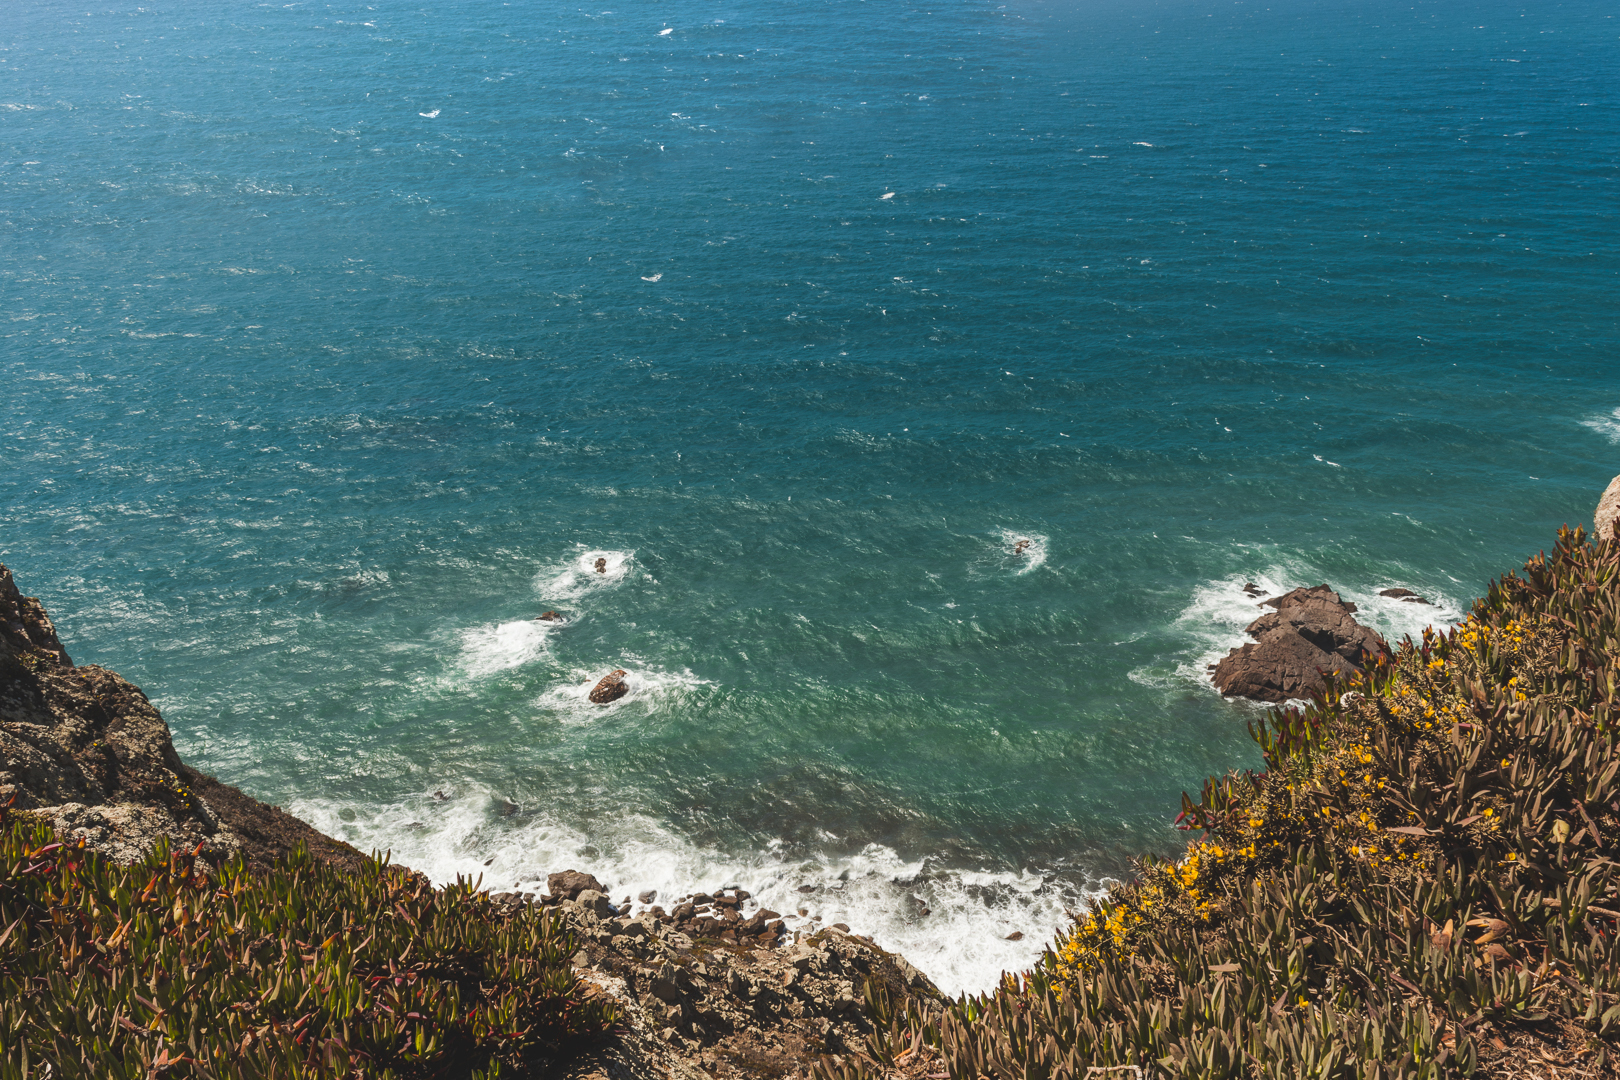 Waves crashing in continental Europe's Westernmost point, the Cabo da Roca in Portugal